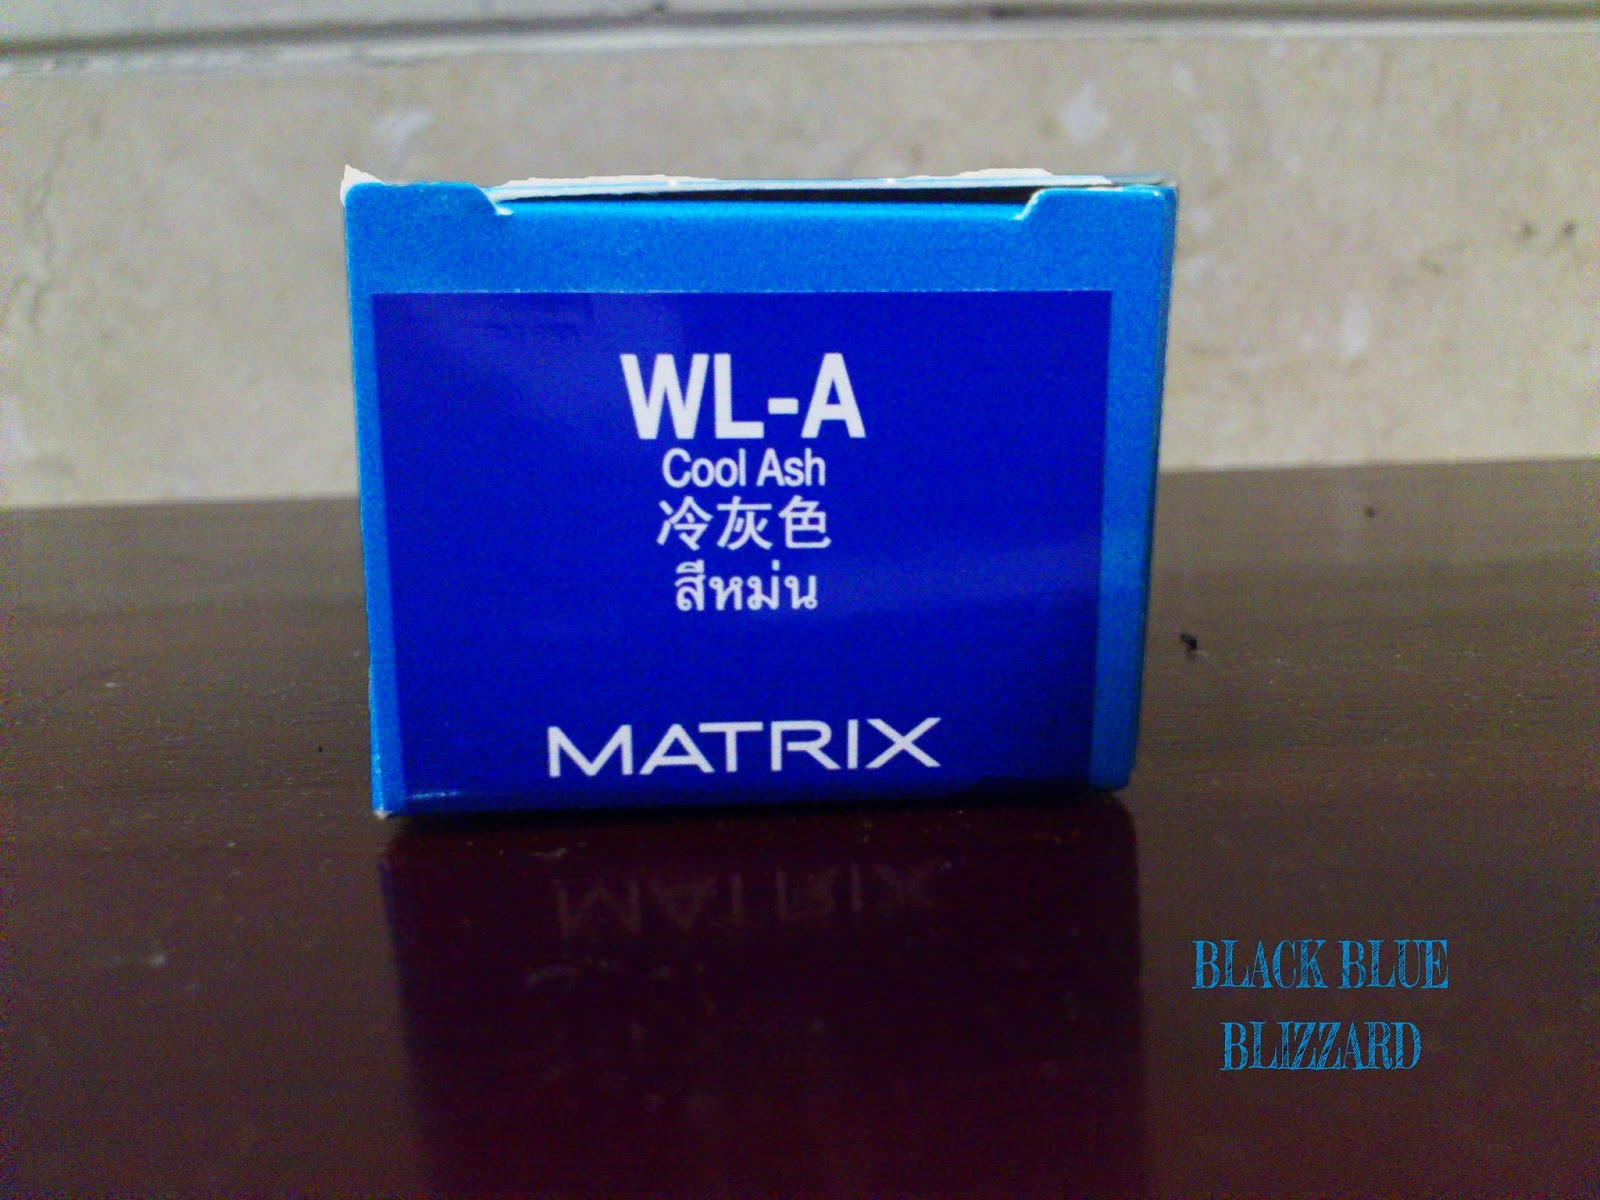 loreal matrix, matrix hair color, matrix hair color review, matrix wonder light cool ash review